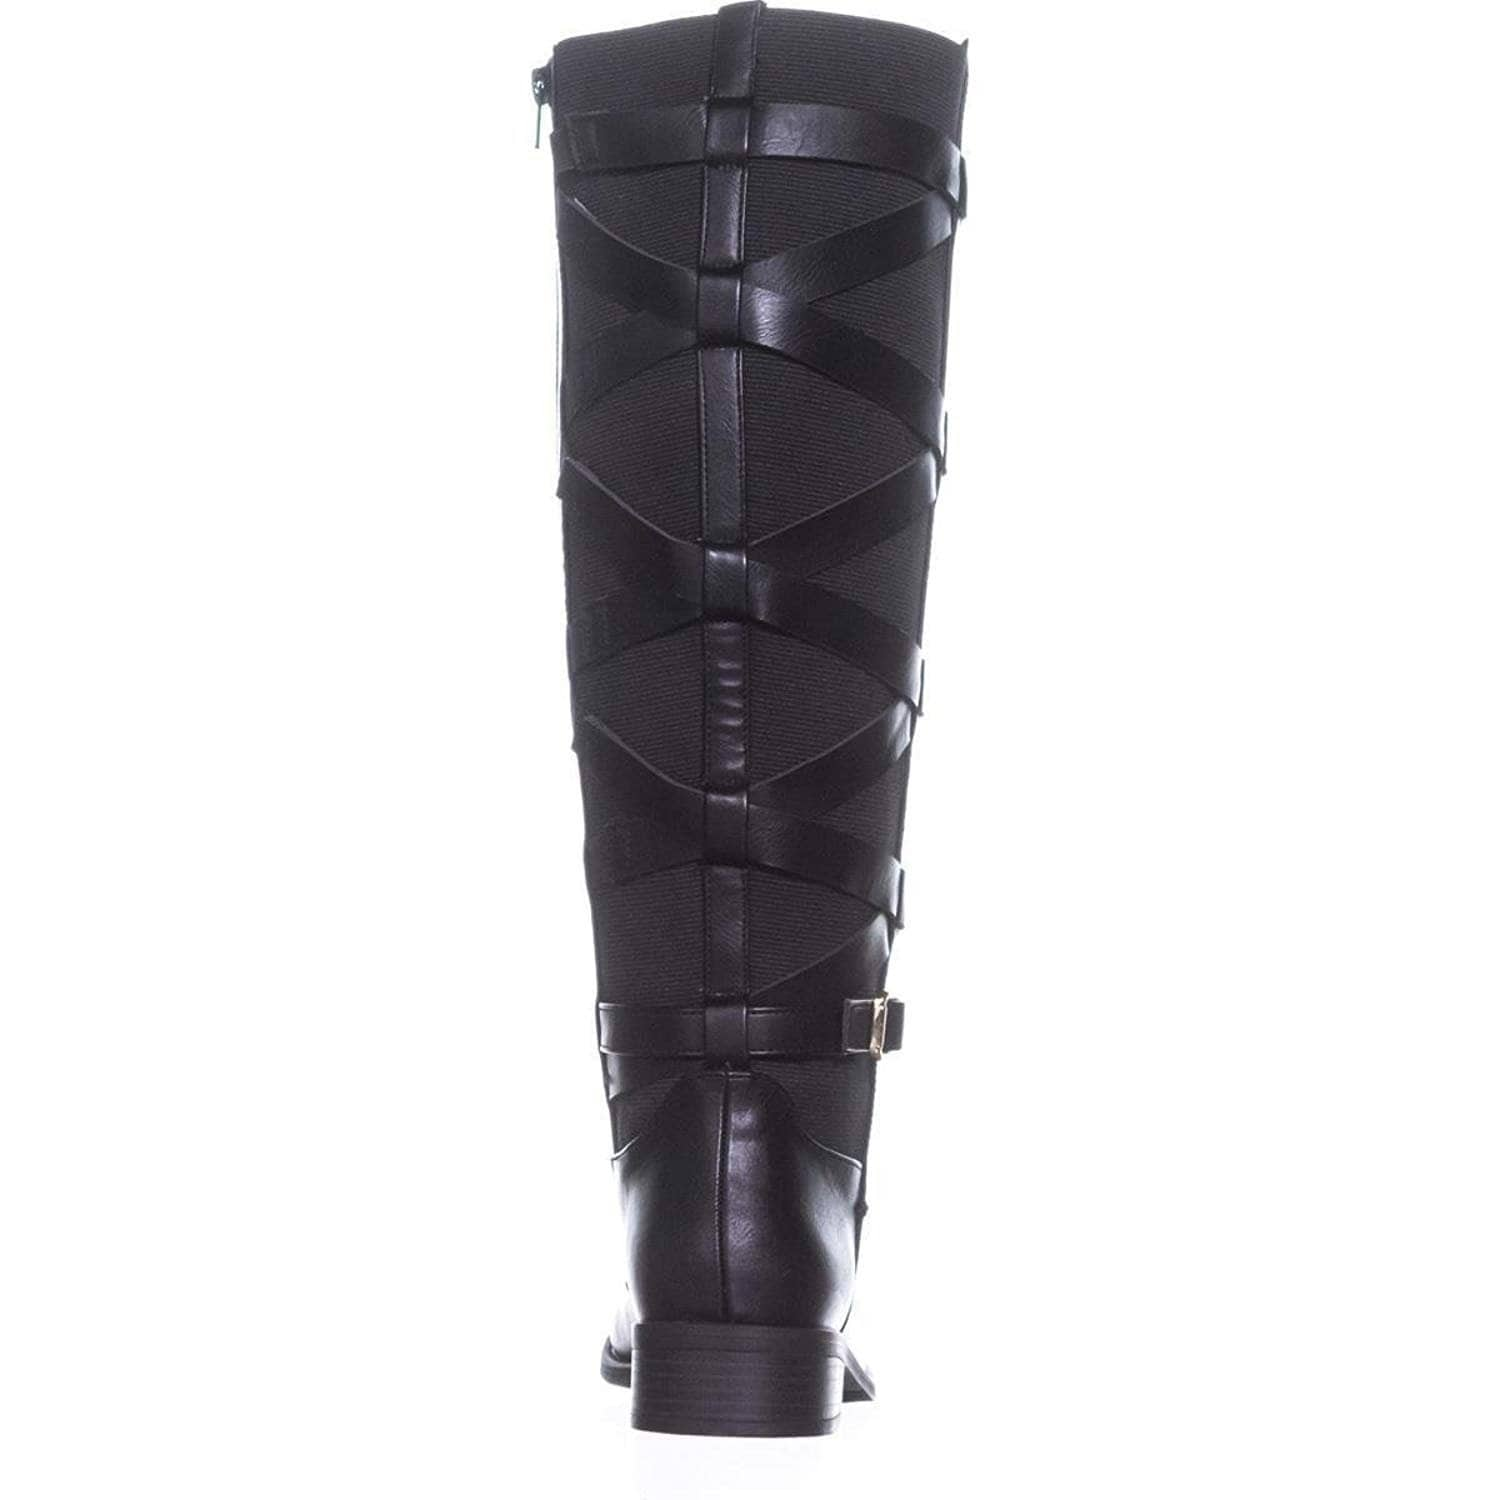 8a124a864c56 Shop Thalia Sodi Womens Veronika Wide Calf Riding Boots Closed Toe Knee  High Fashi... - Free Shipping On Orders Over  45 - Overstock - 25738131